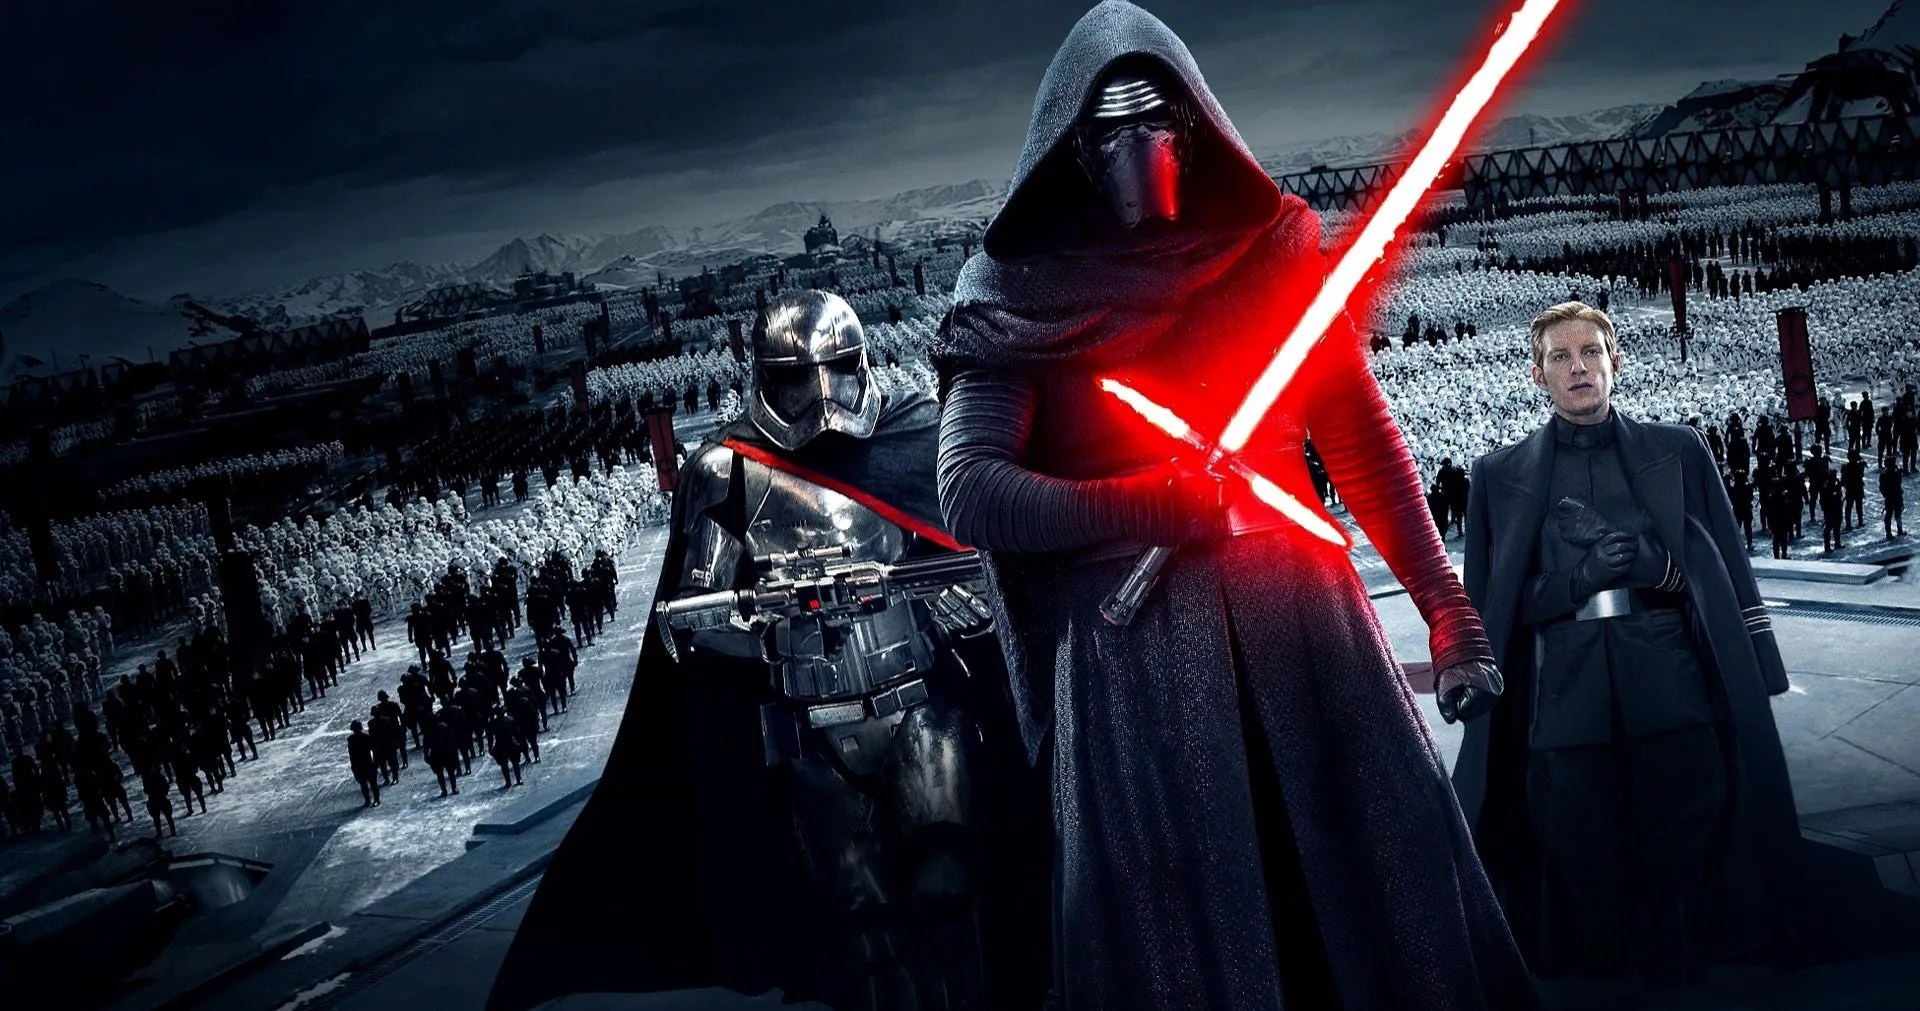 First Order Origins Revealed in New 'Star Wars' Book